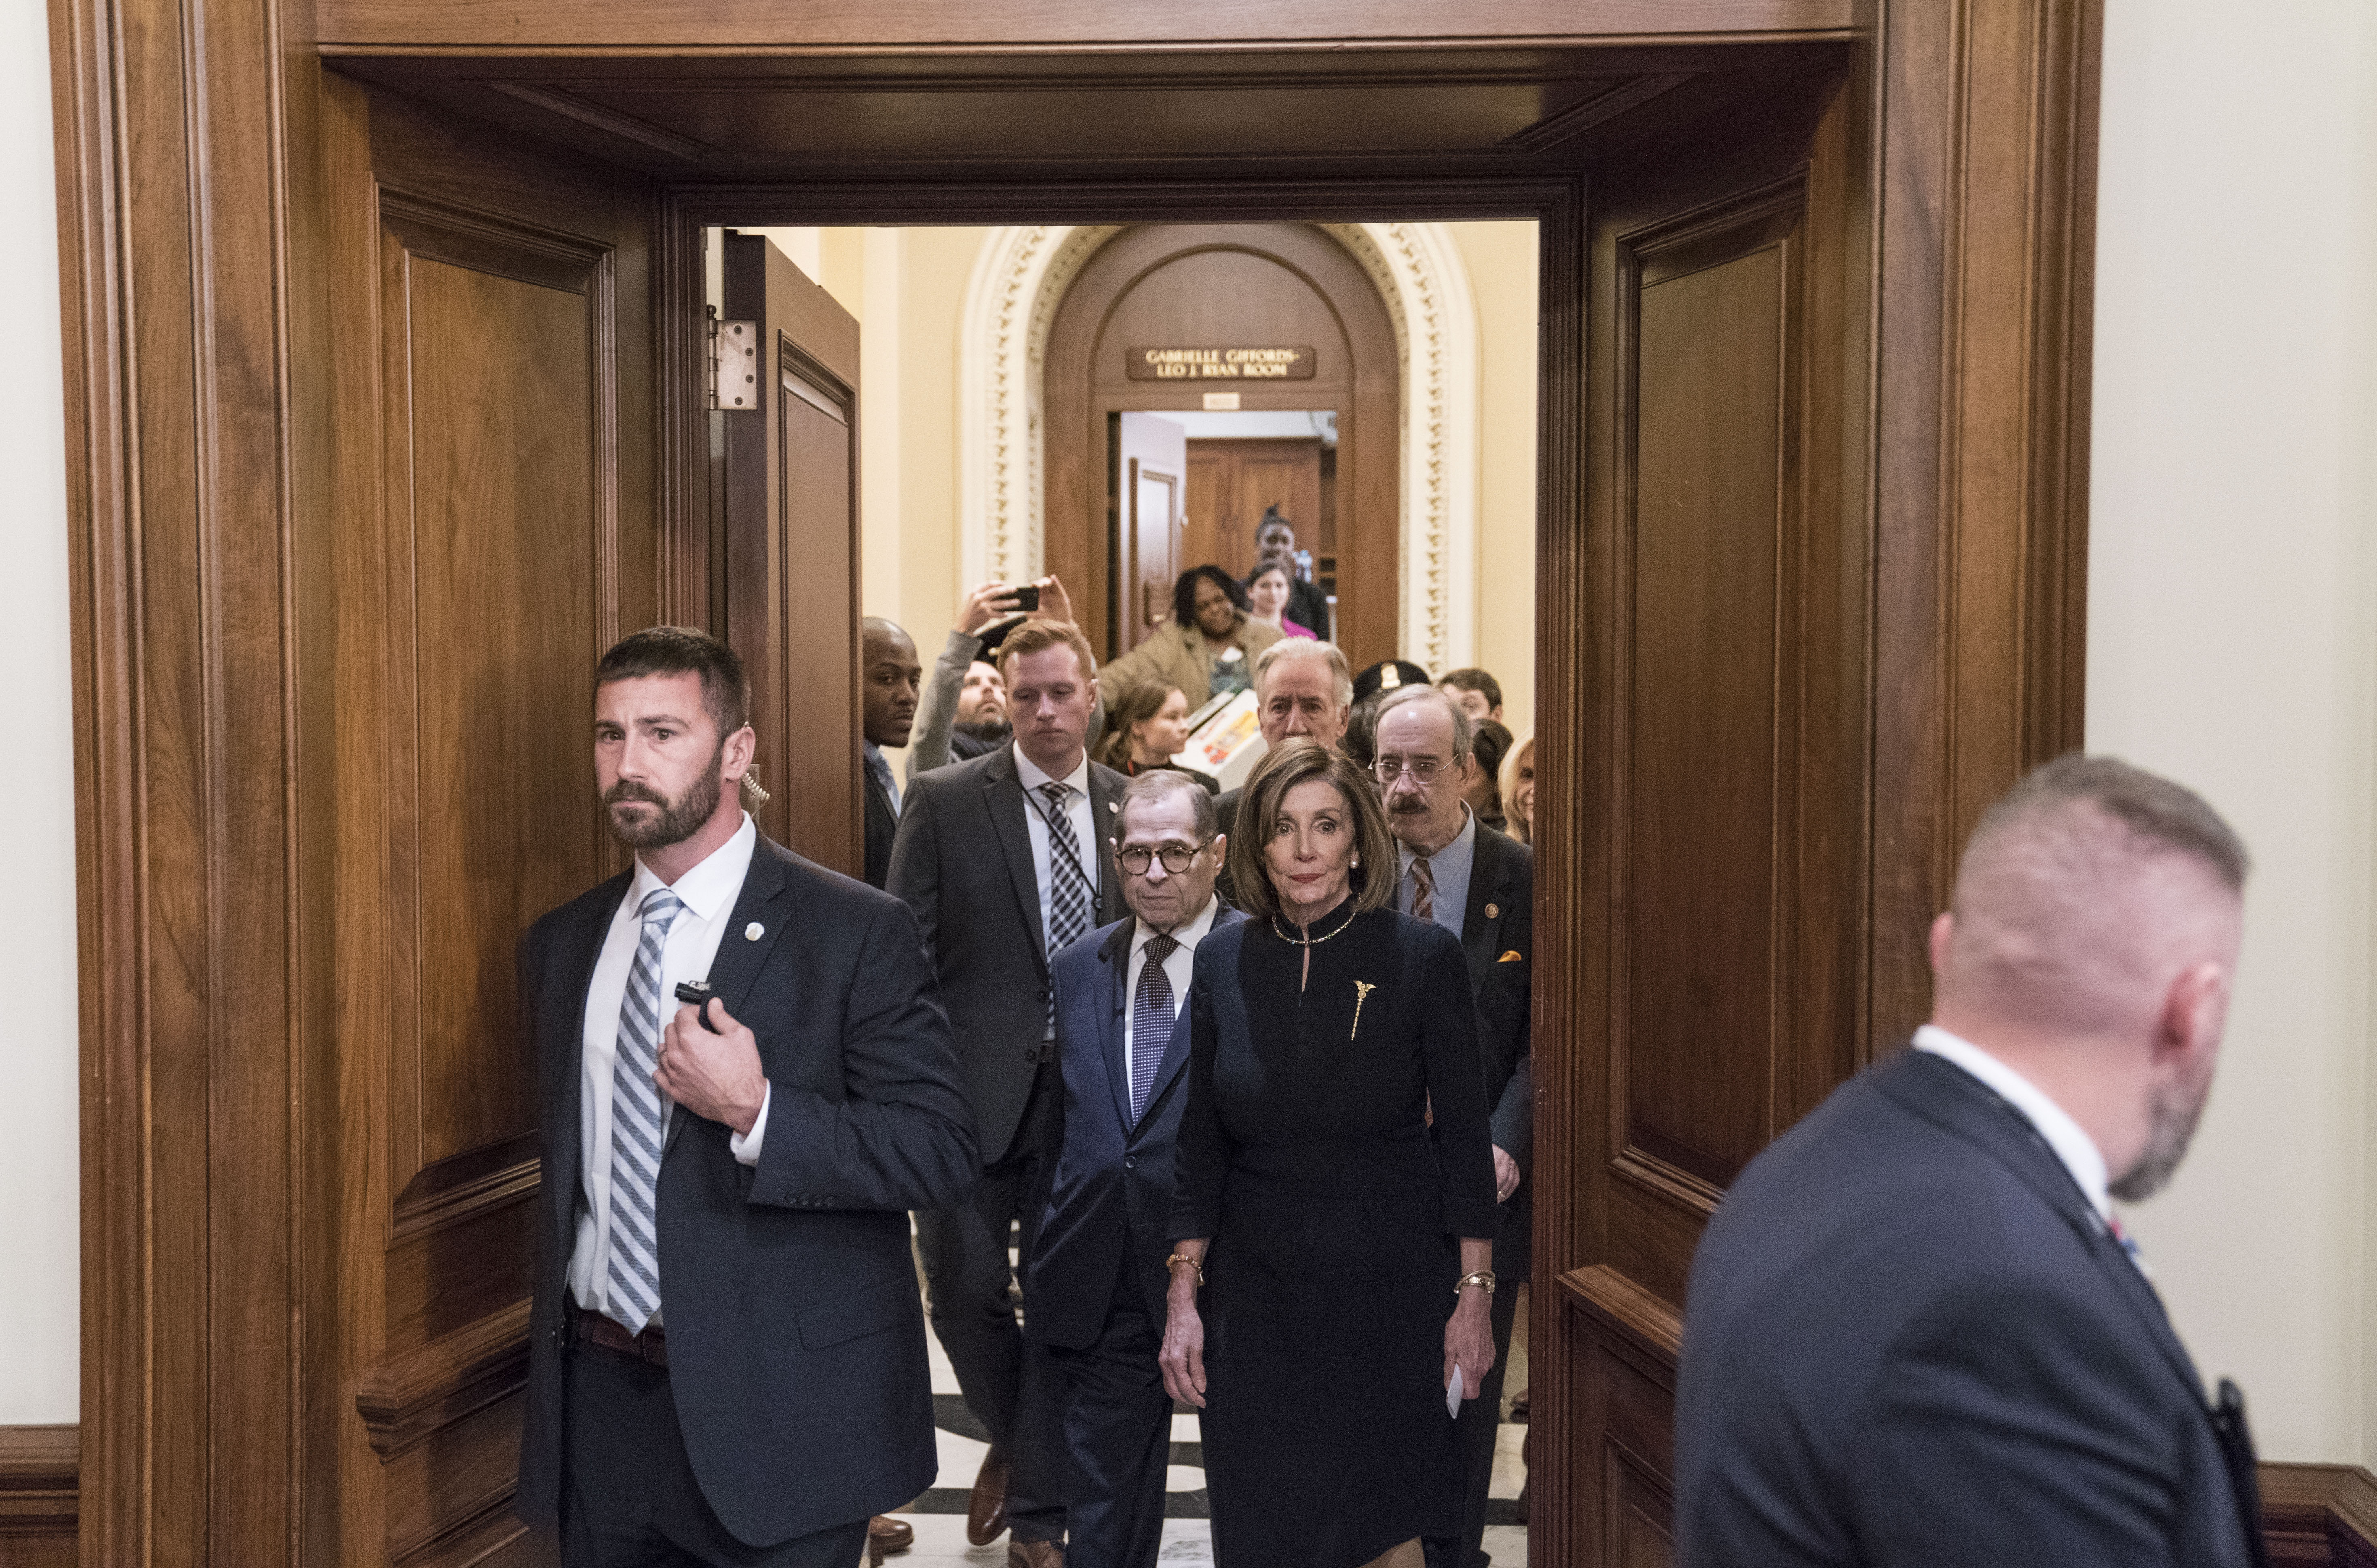 WASHINGTON, DC - DECEMBER 18: Speaker of the House Nancy Pelosi (D-CA) arrives to the Rayburn Room of the US Capitol to deliver remarks following the House of Representatives vote to impeach President Donald Trump on December 18, 2019 in Washington, DC. On Wednesday evening, the U.S. House of Representatives voted 230 to 197 and 229 to 198 to impeach President Trump on two articles of impeachment charging him with abuse of power and obstruction of Congress. (Photo by Sarah Silbiger/Getty Images)